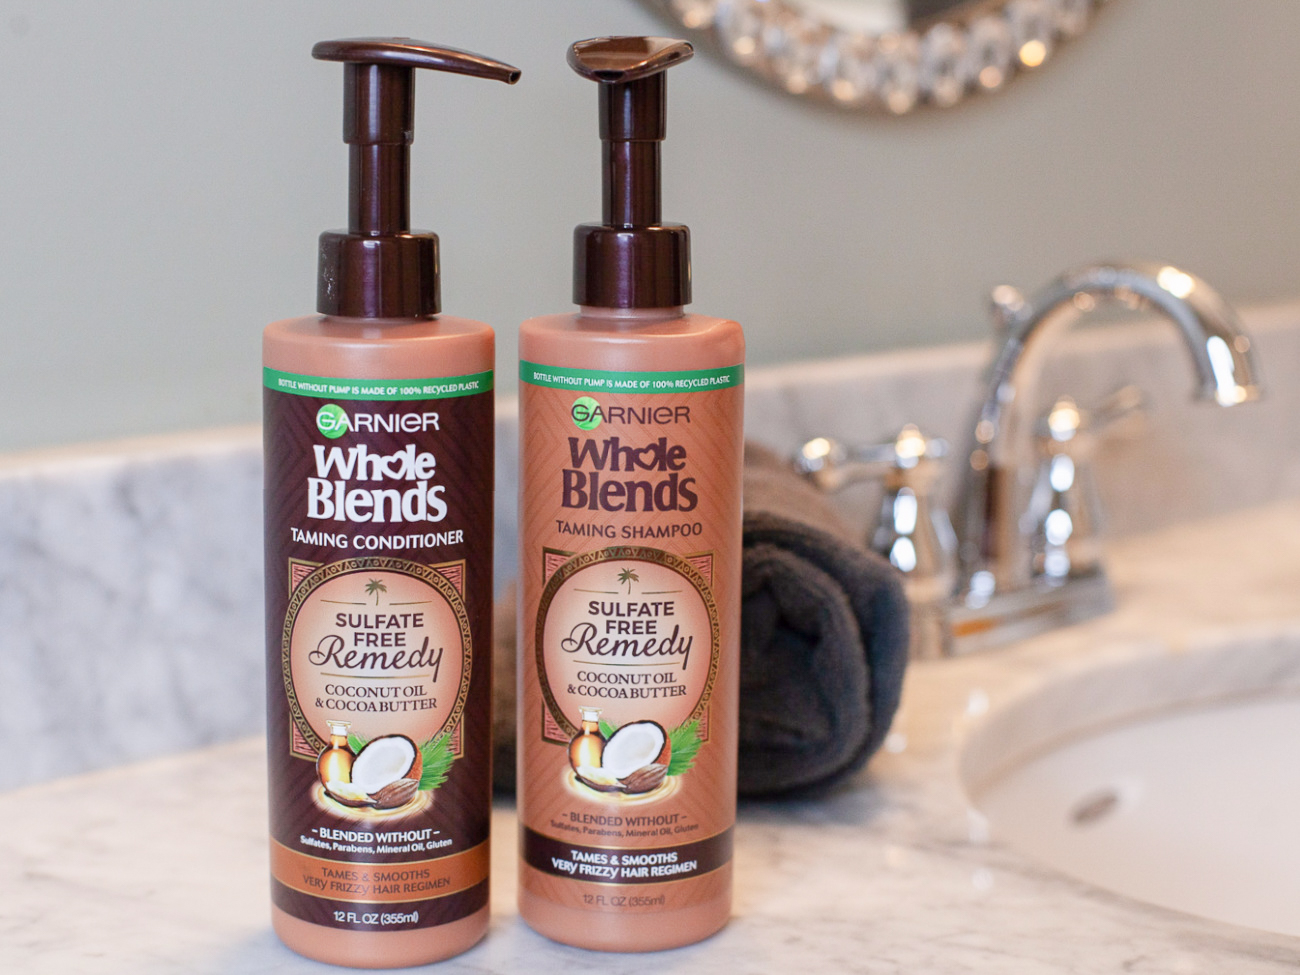 Garnier Whole Blends Sulfate Free Remedy Hair Care Just $3.25 Per Bottle (Regular Price $8.49) on I Heart Publix